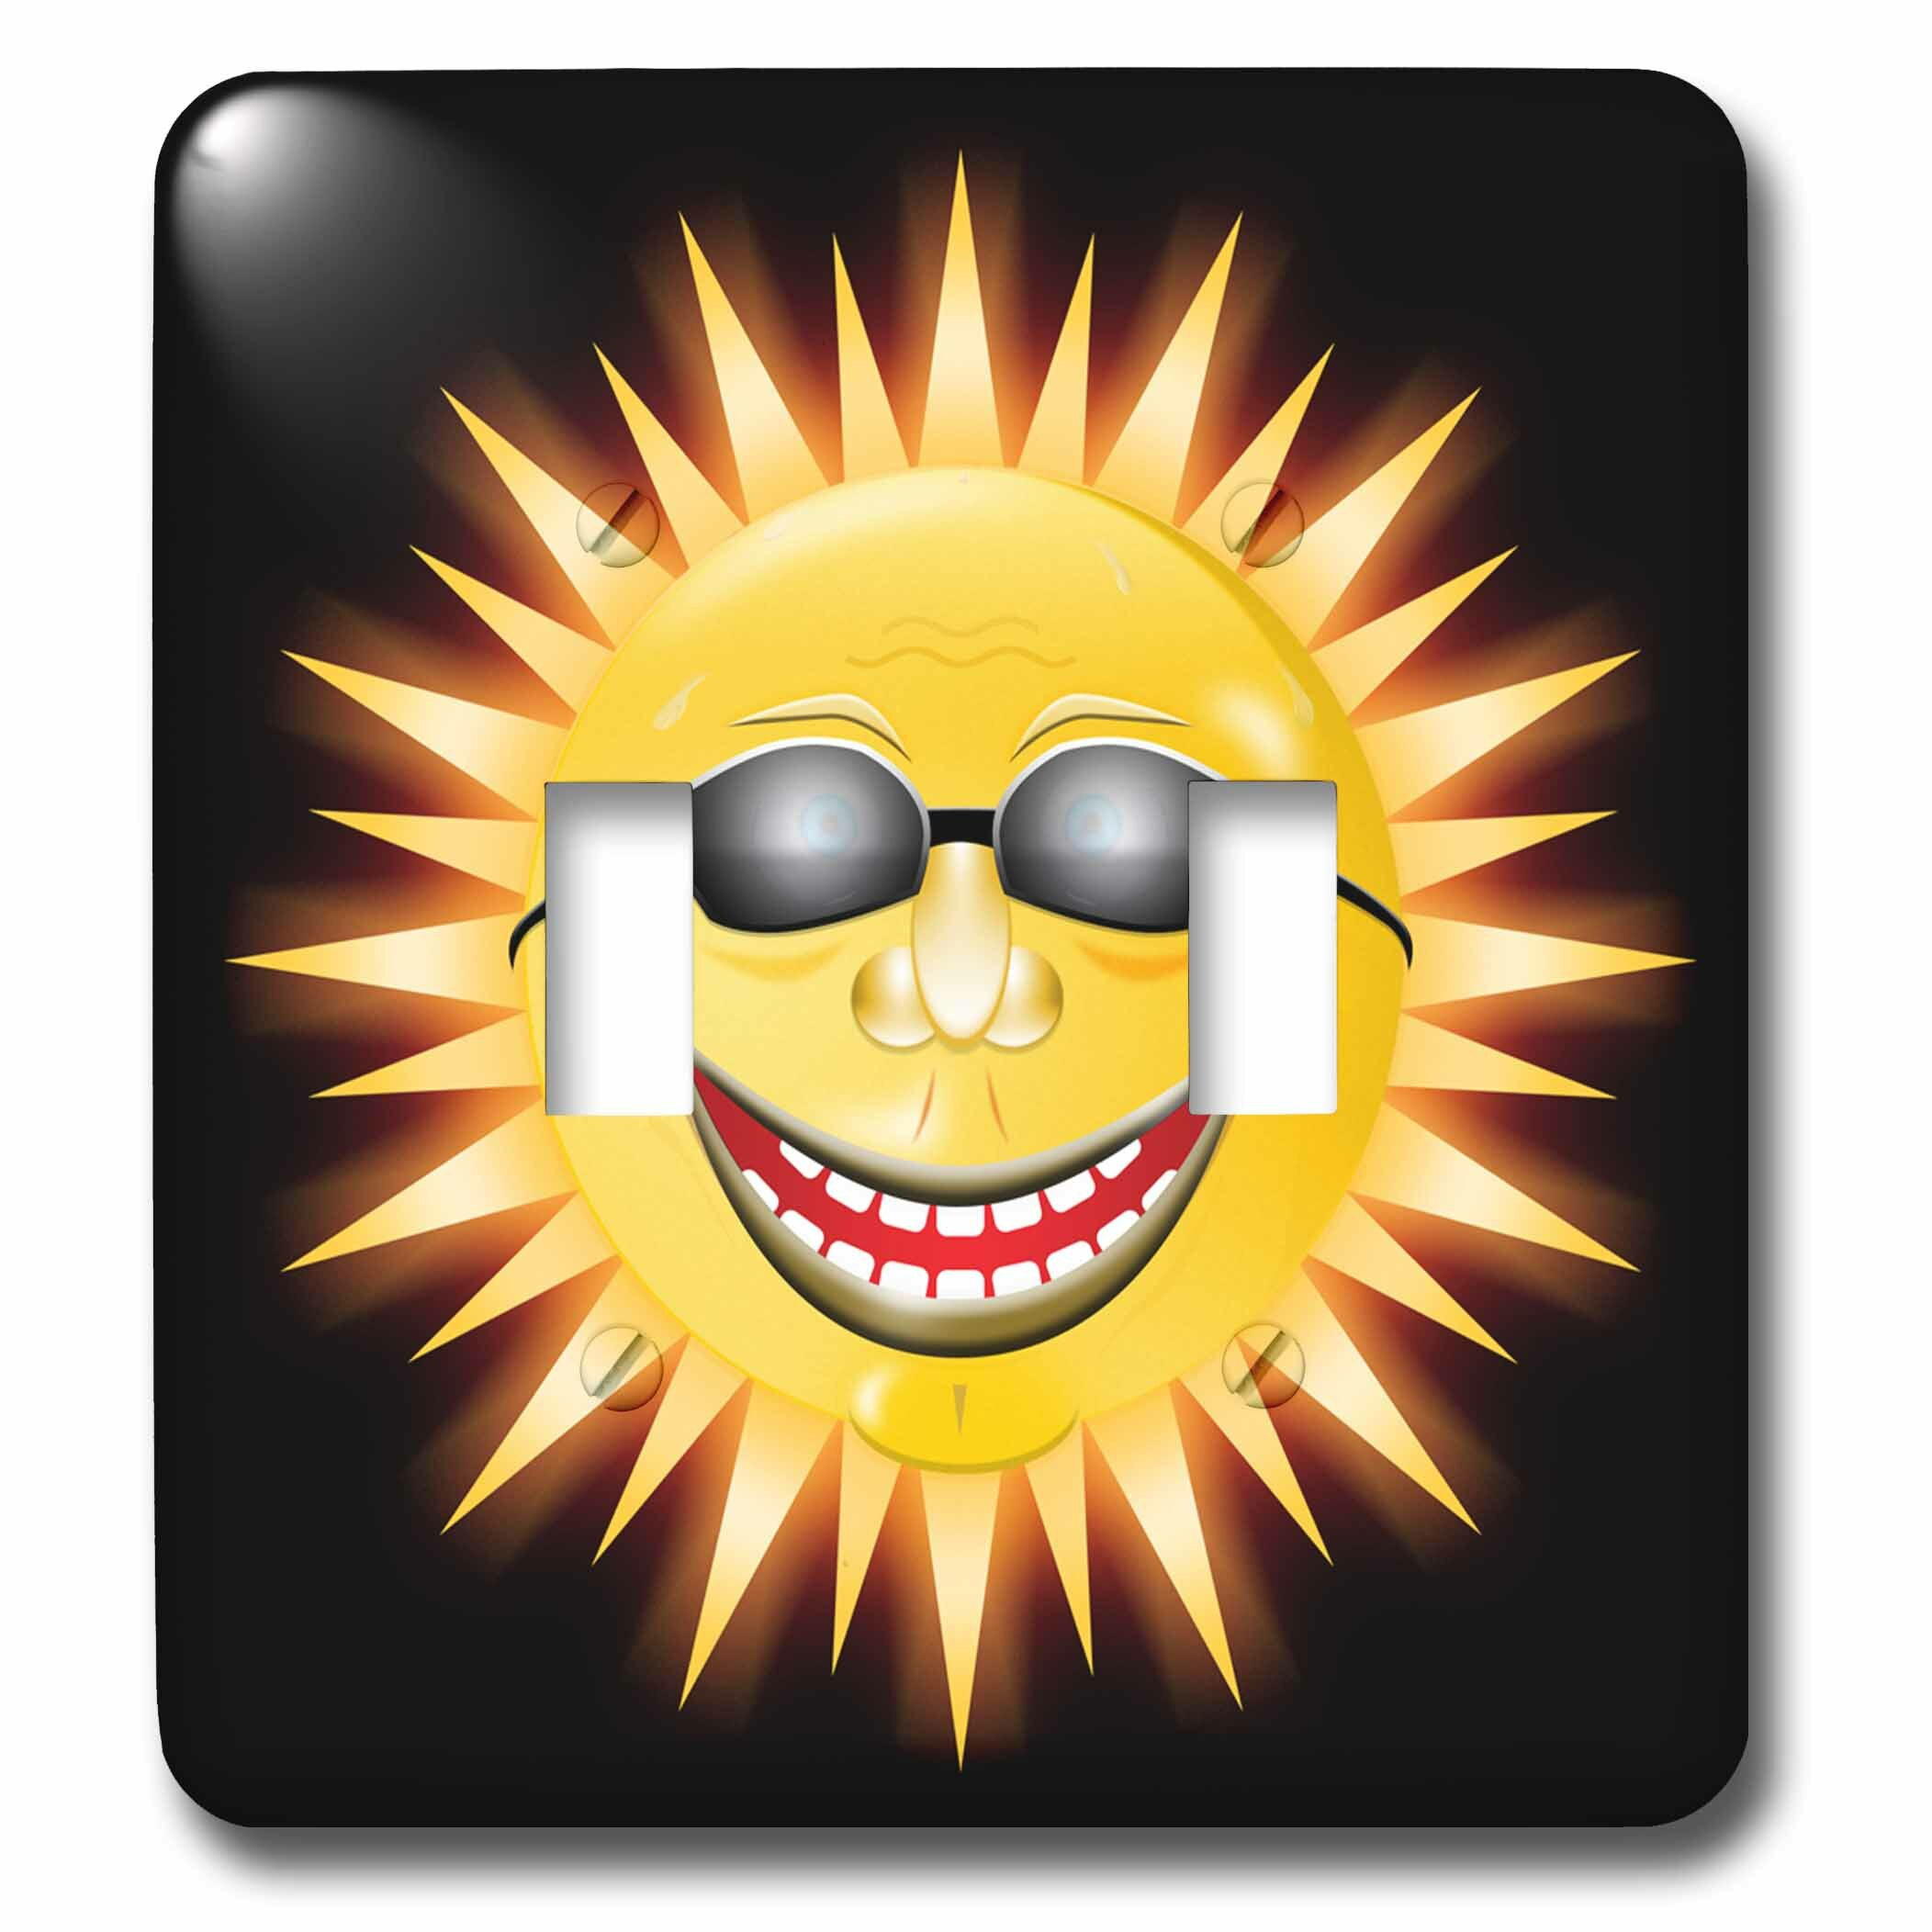 3drose Smiling Sunshine A Happy Sunny Face Wearing Sunglasses With A Smile 2 Gang Toggle Light Switch Wall Plate Wayfair